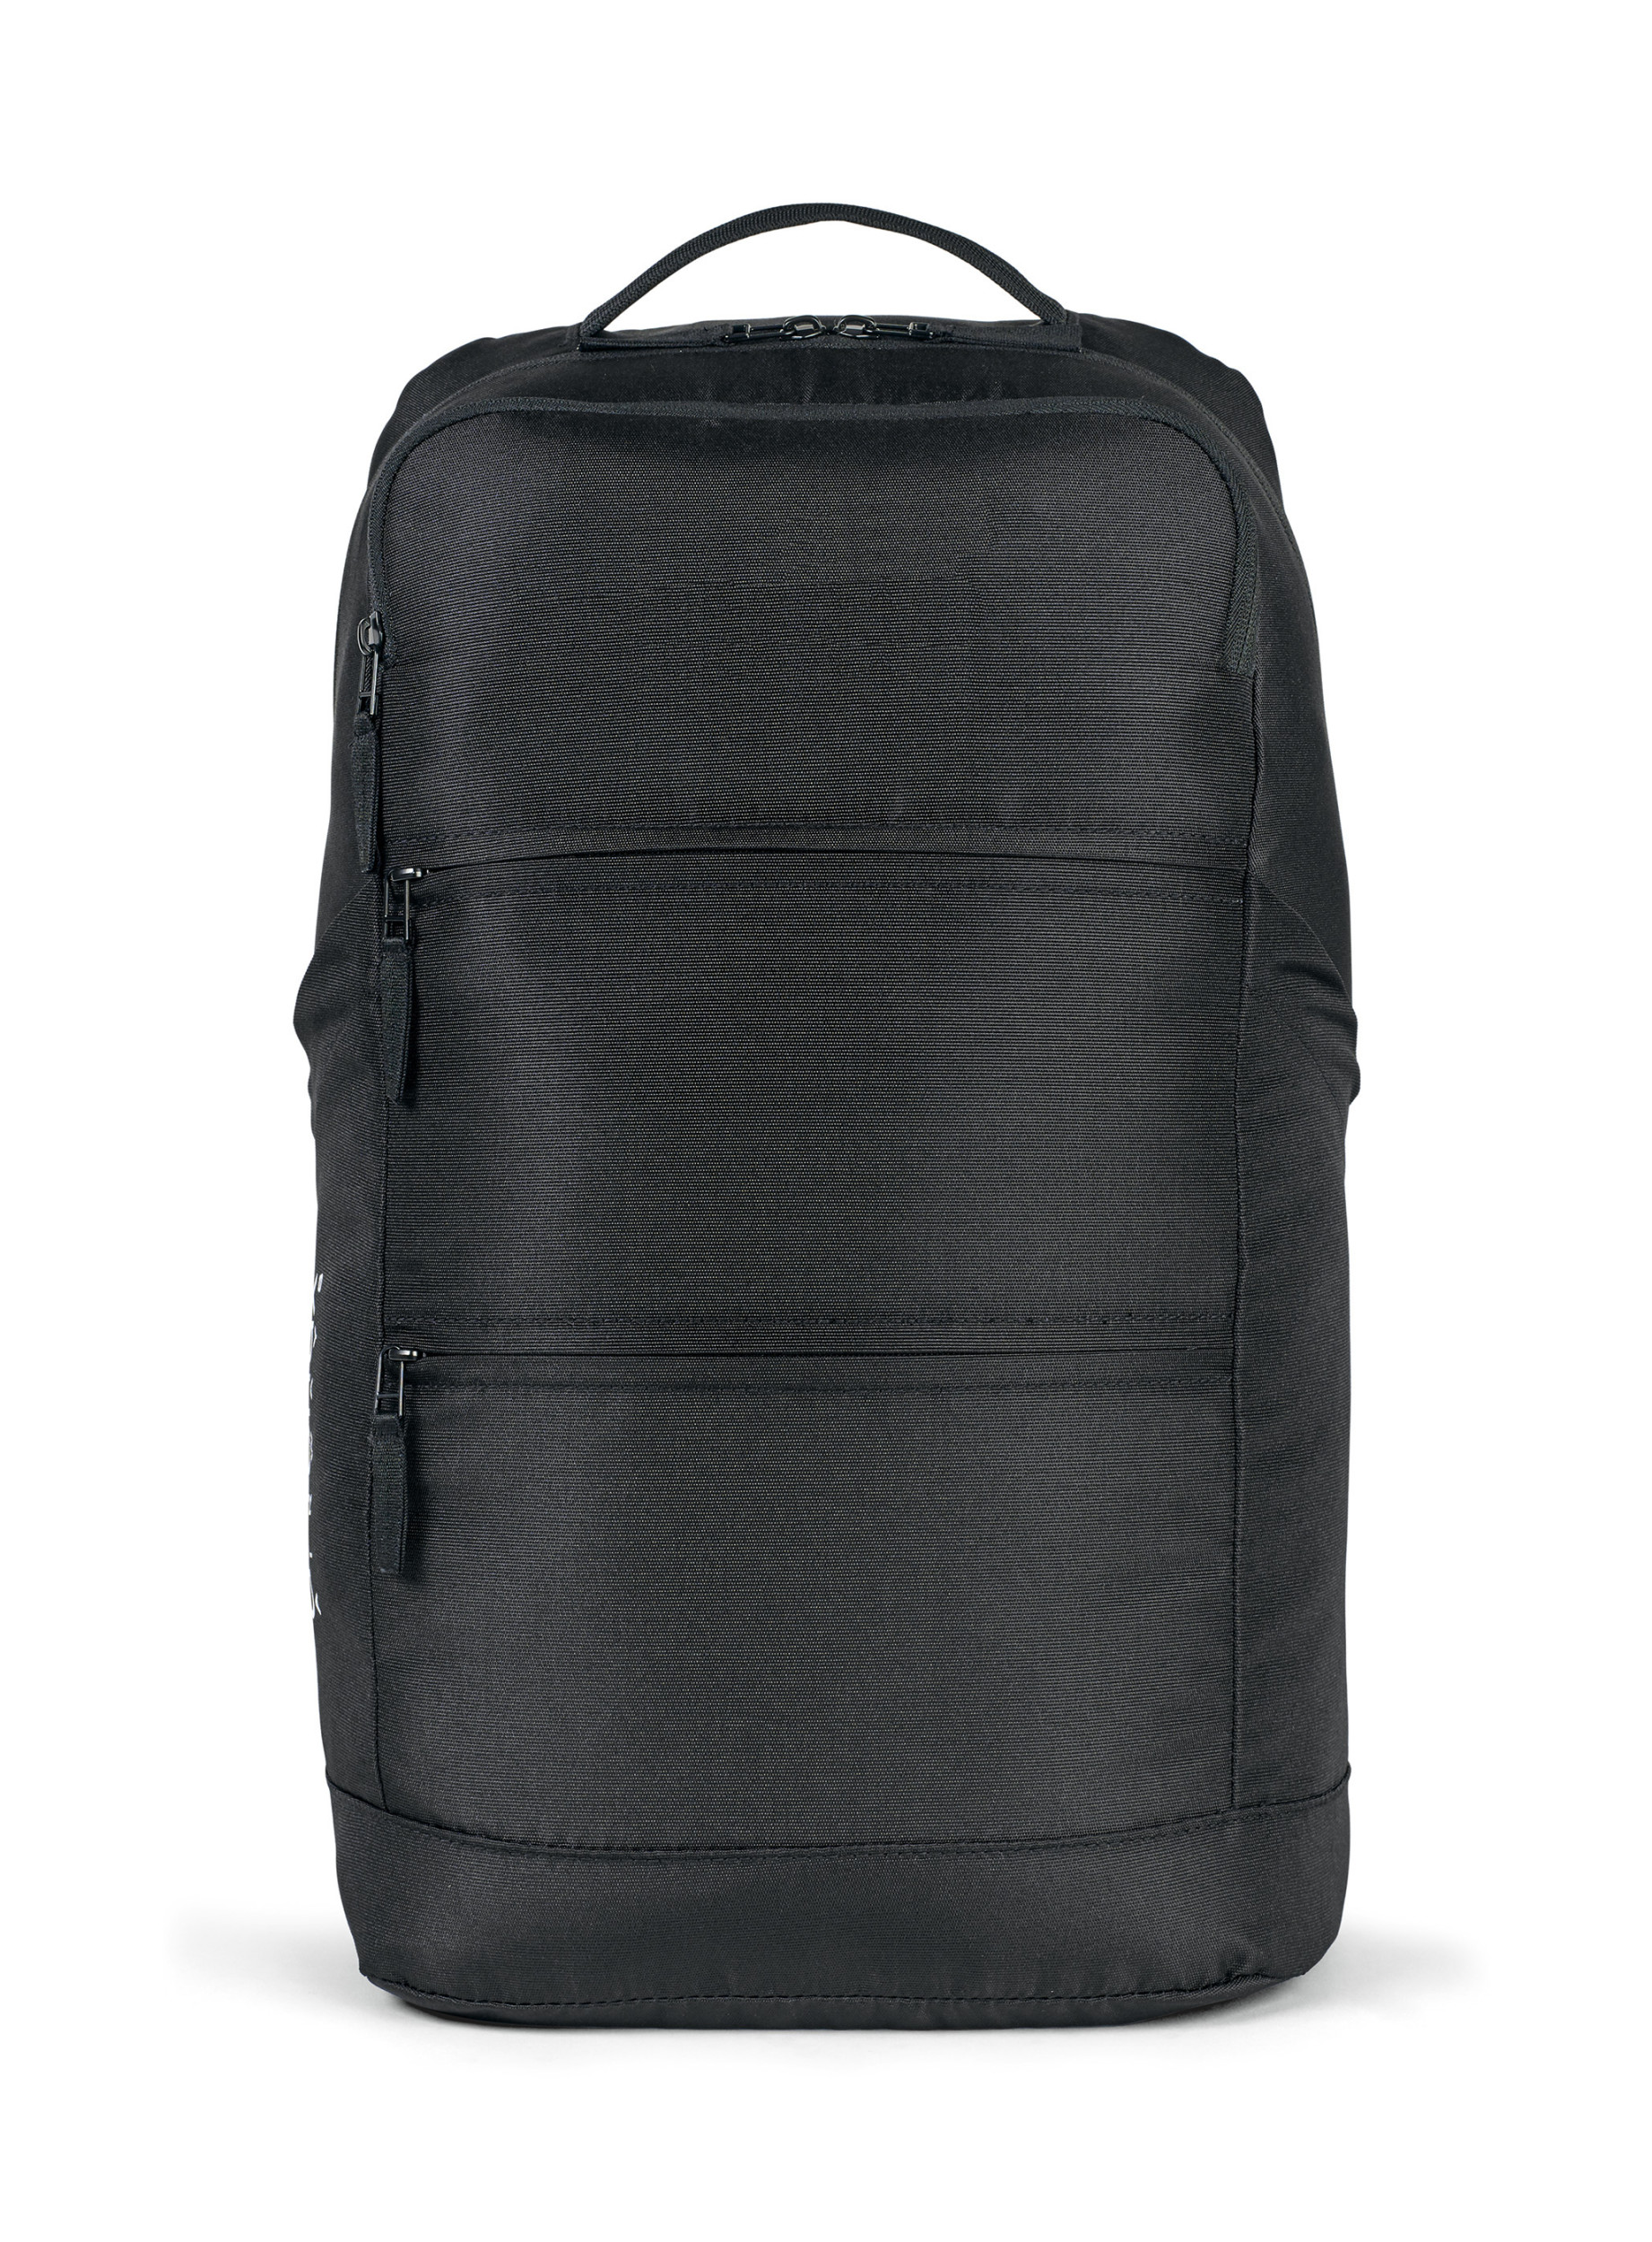 Gemline 100118-001 - Roux Computer Backpack